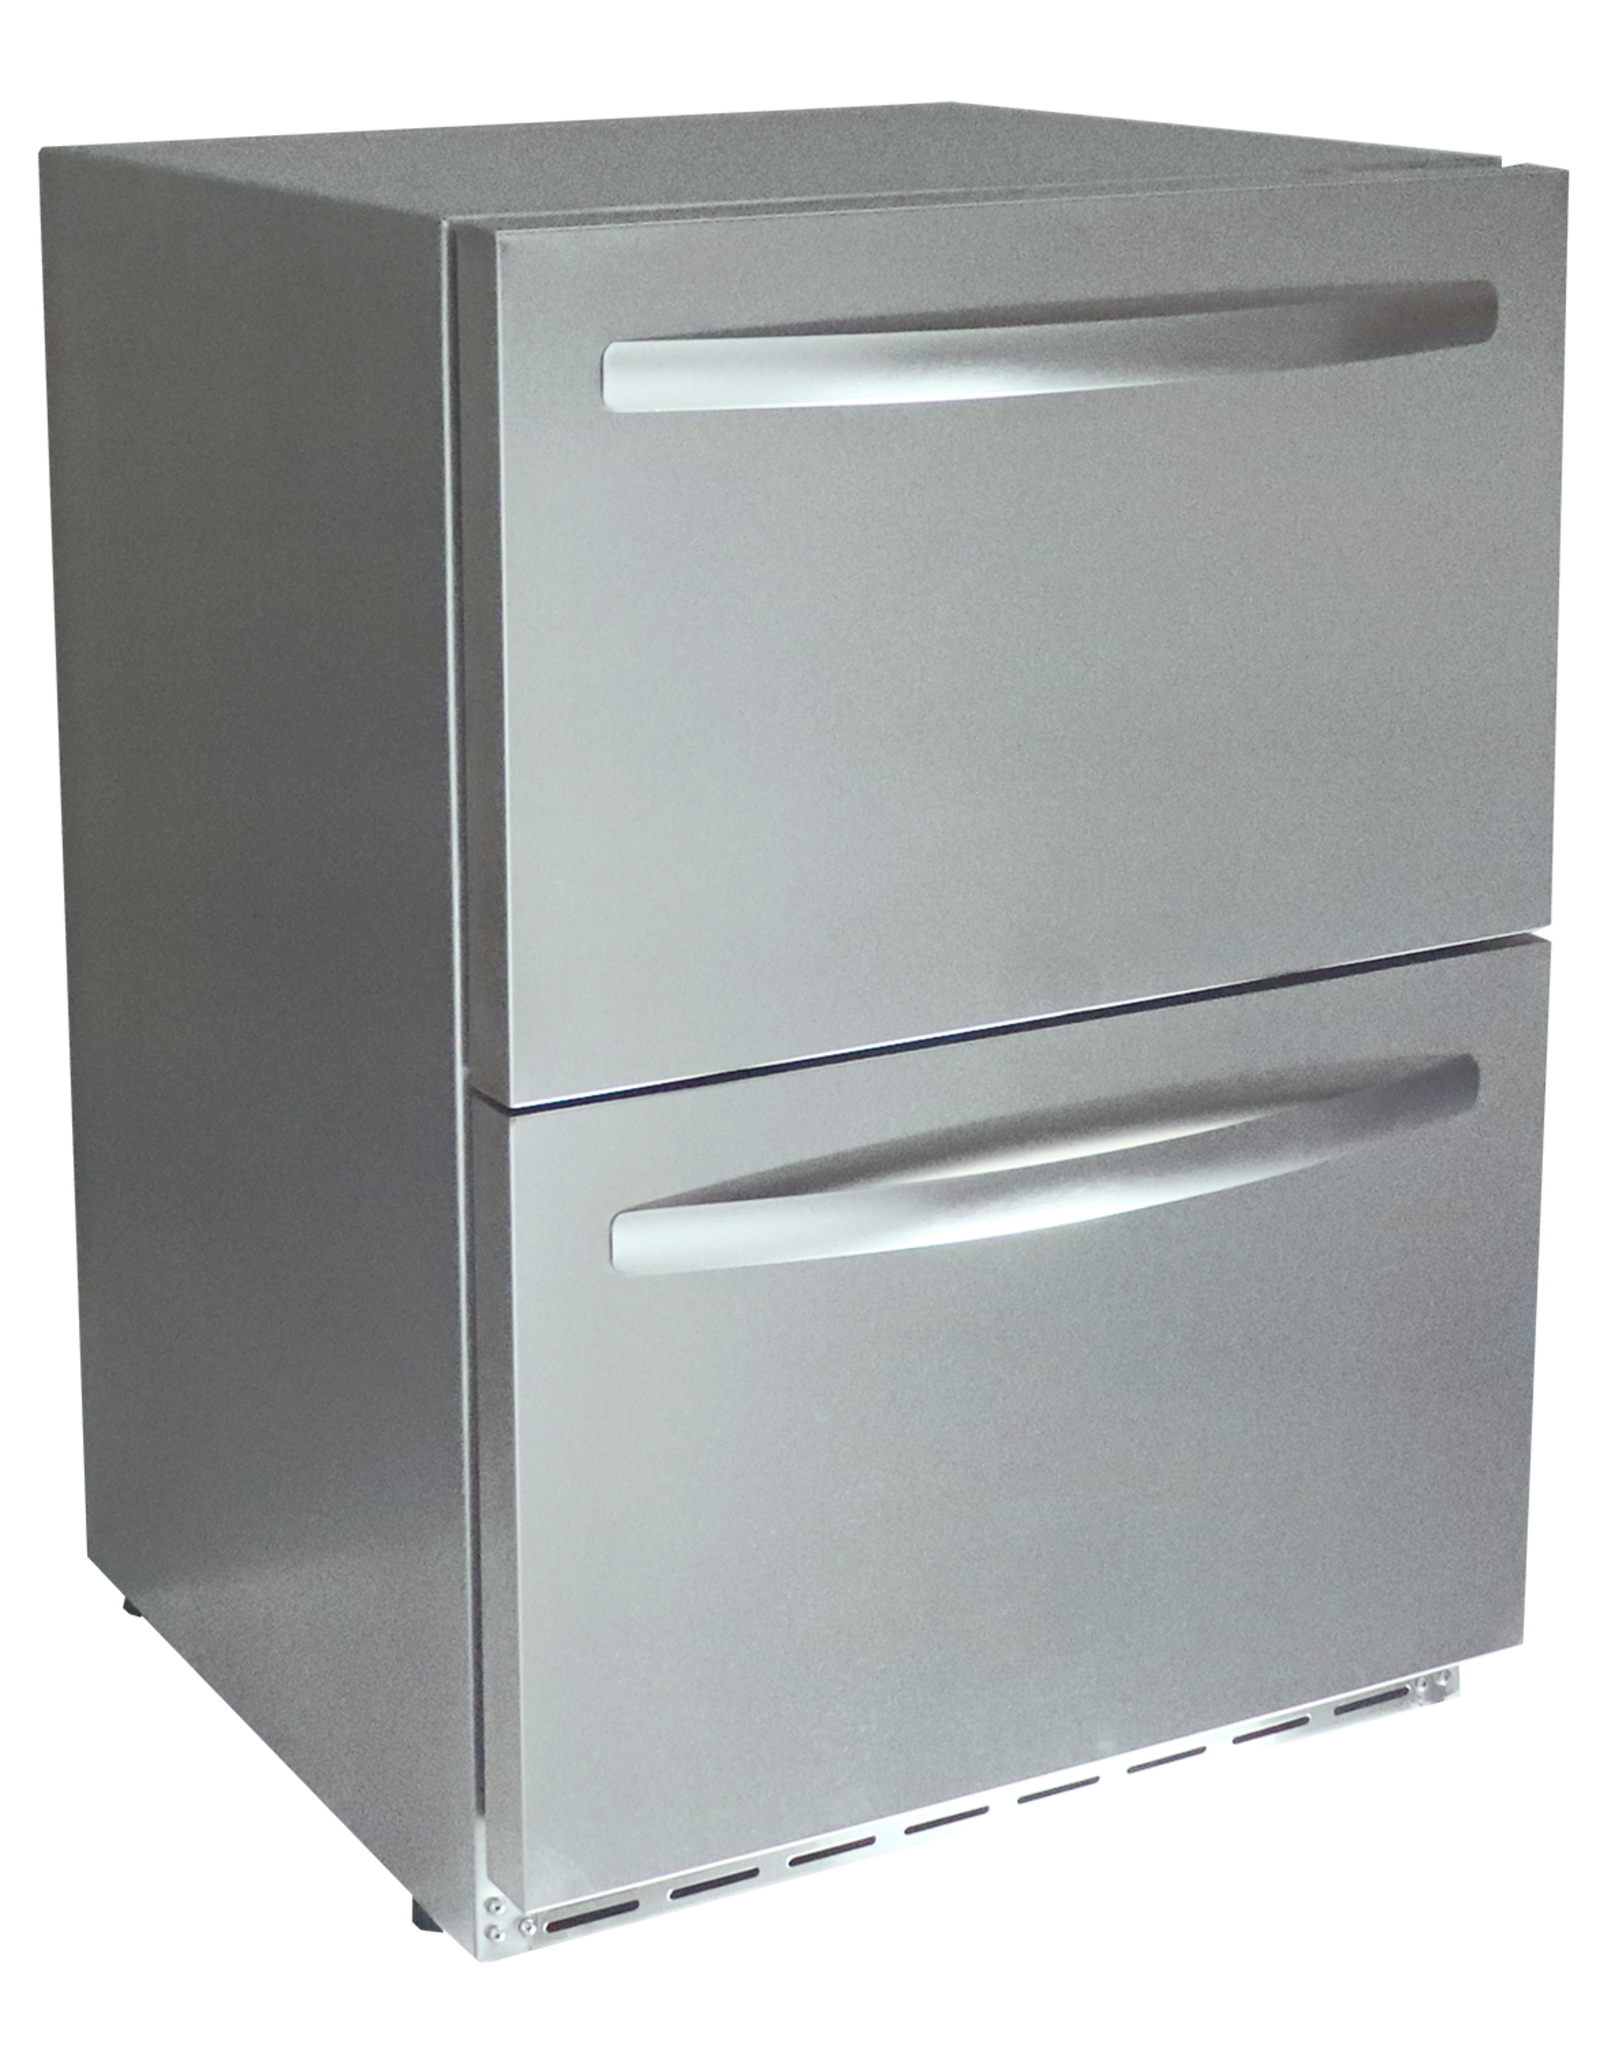 Renaissance Cooking Systems Renaissance Cooking Systems Dual Drawer Refrigerator - REFR4